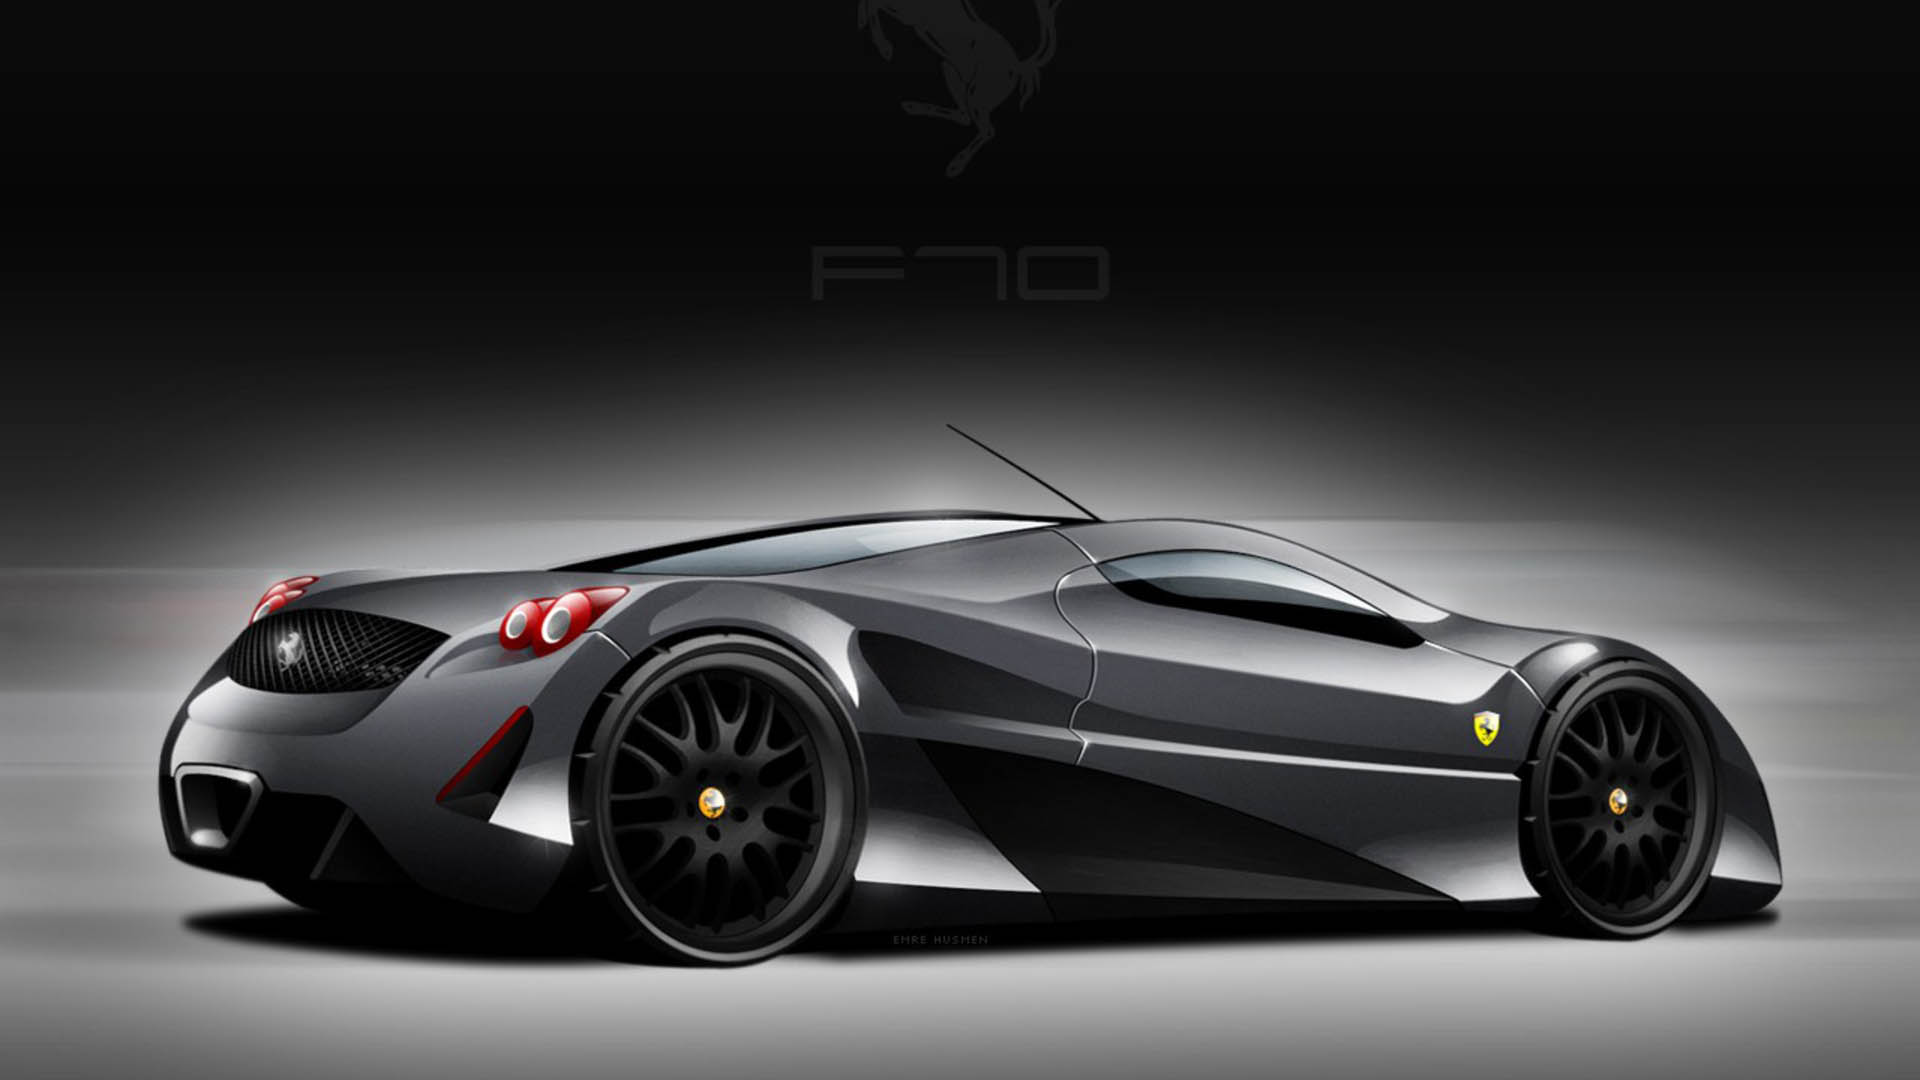 wallpapers of latest cars